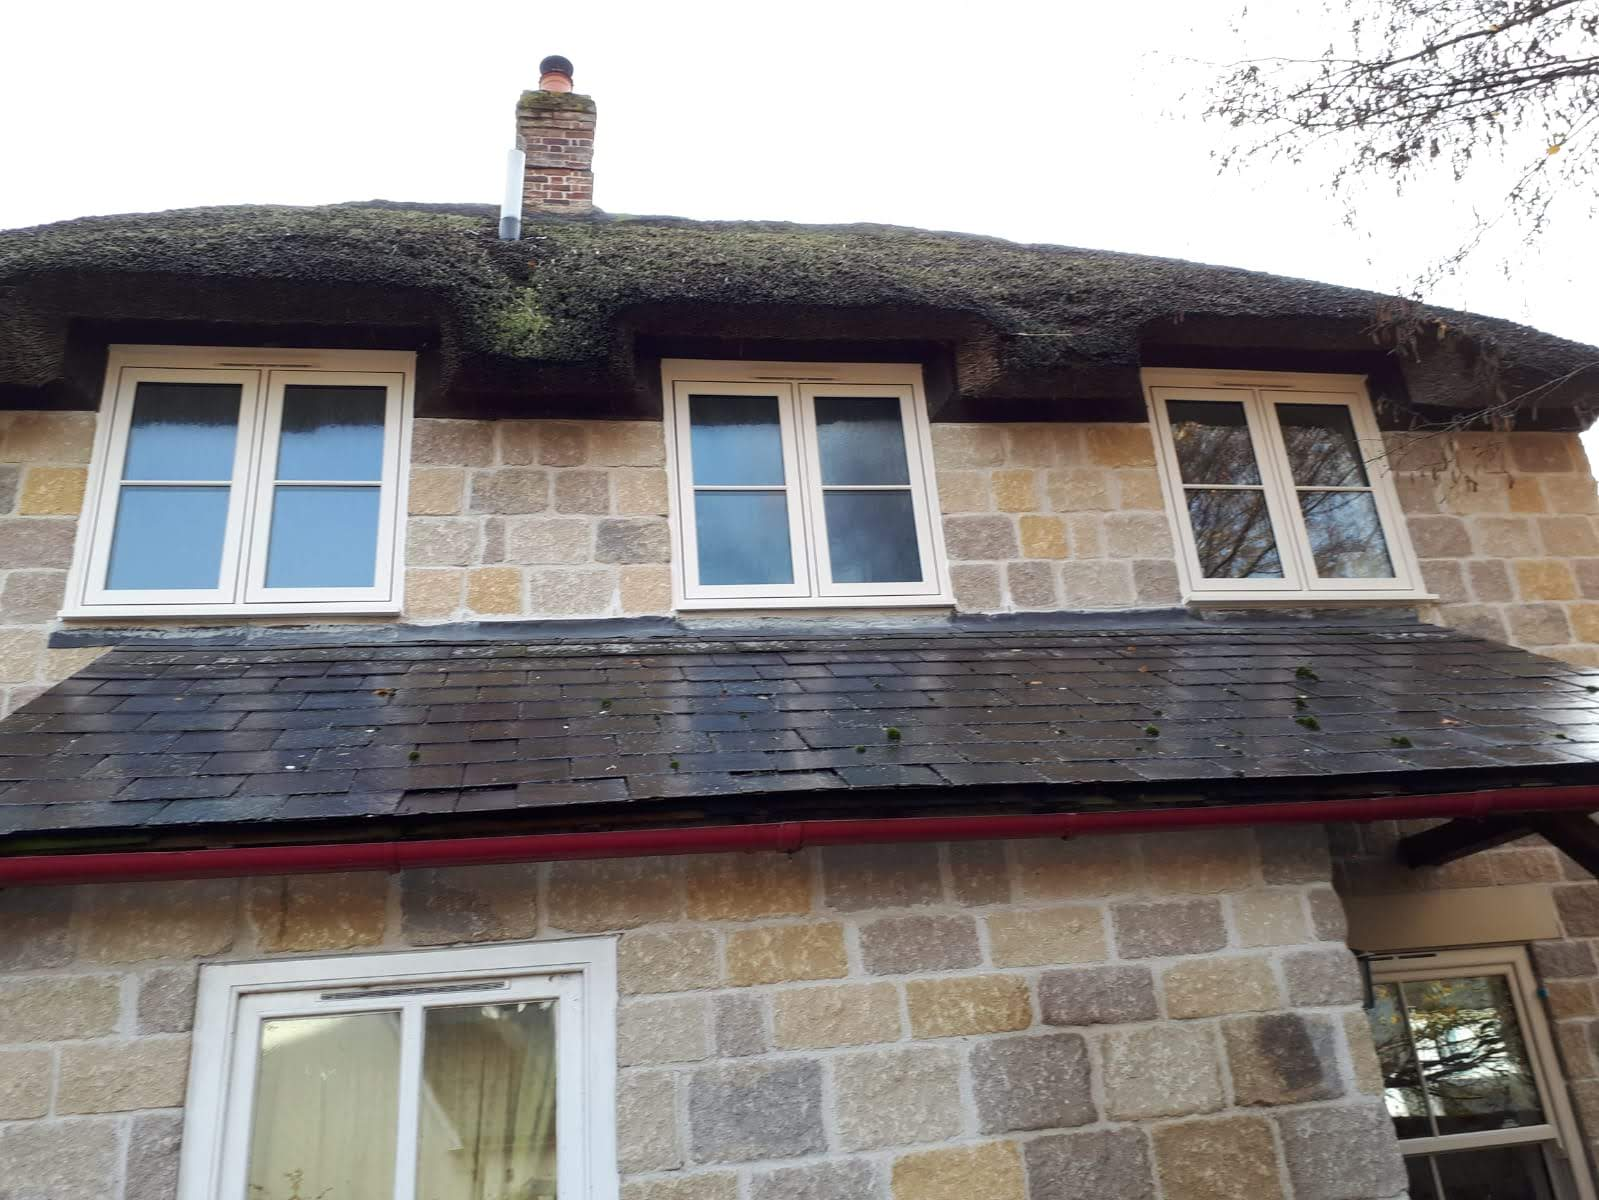 Cosy cottage with heritage window installation.